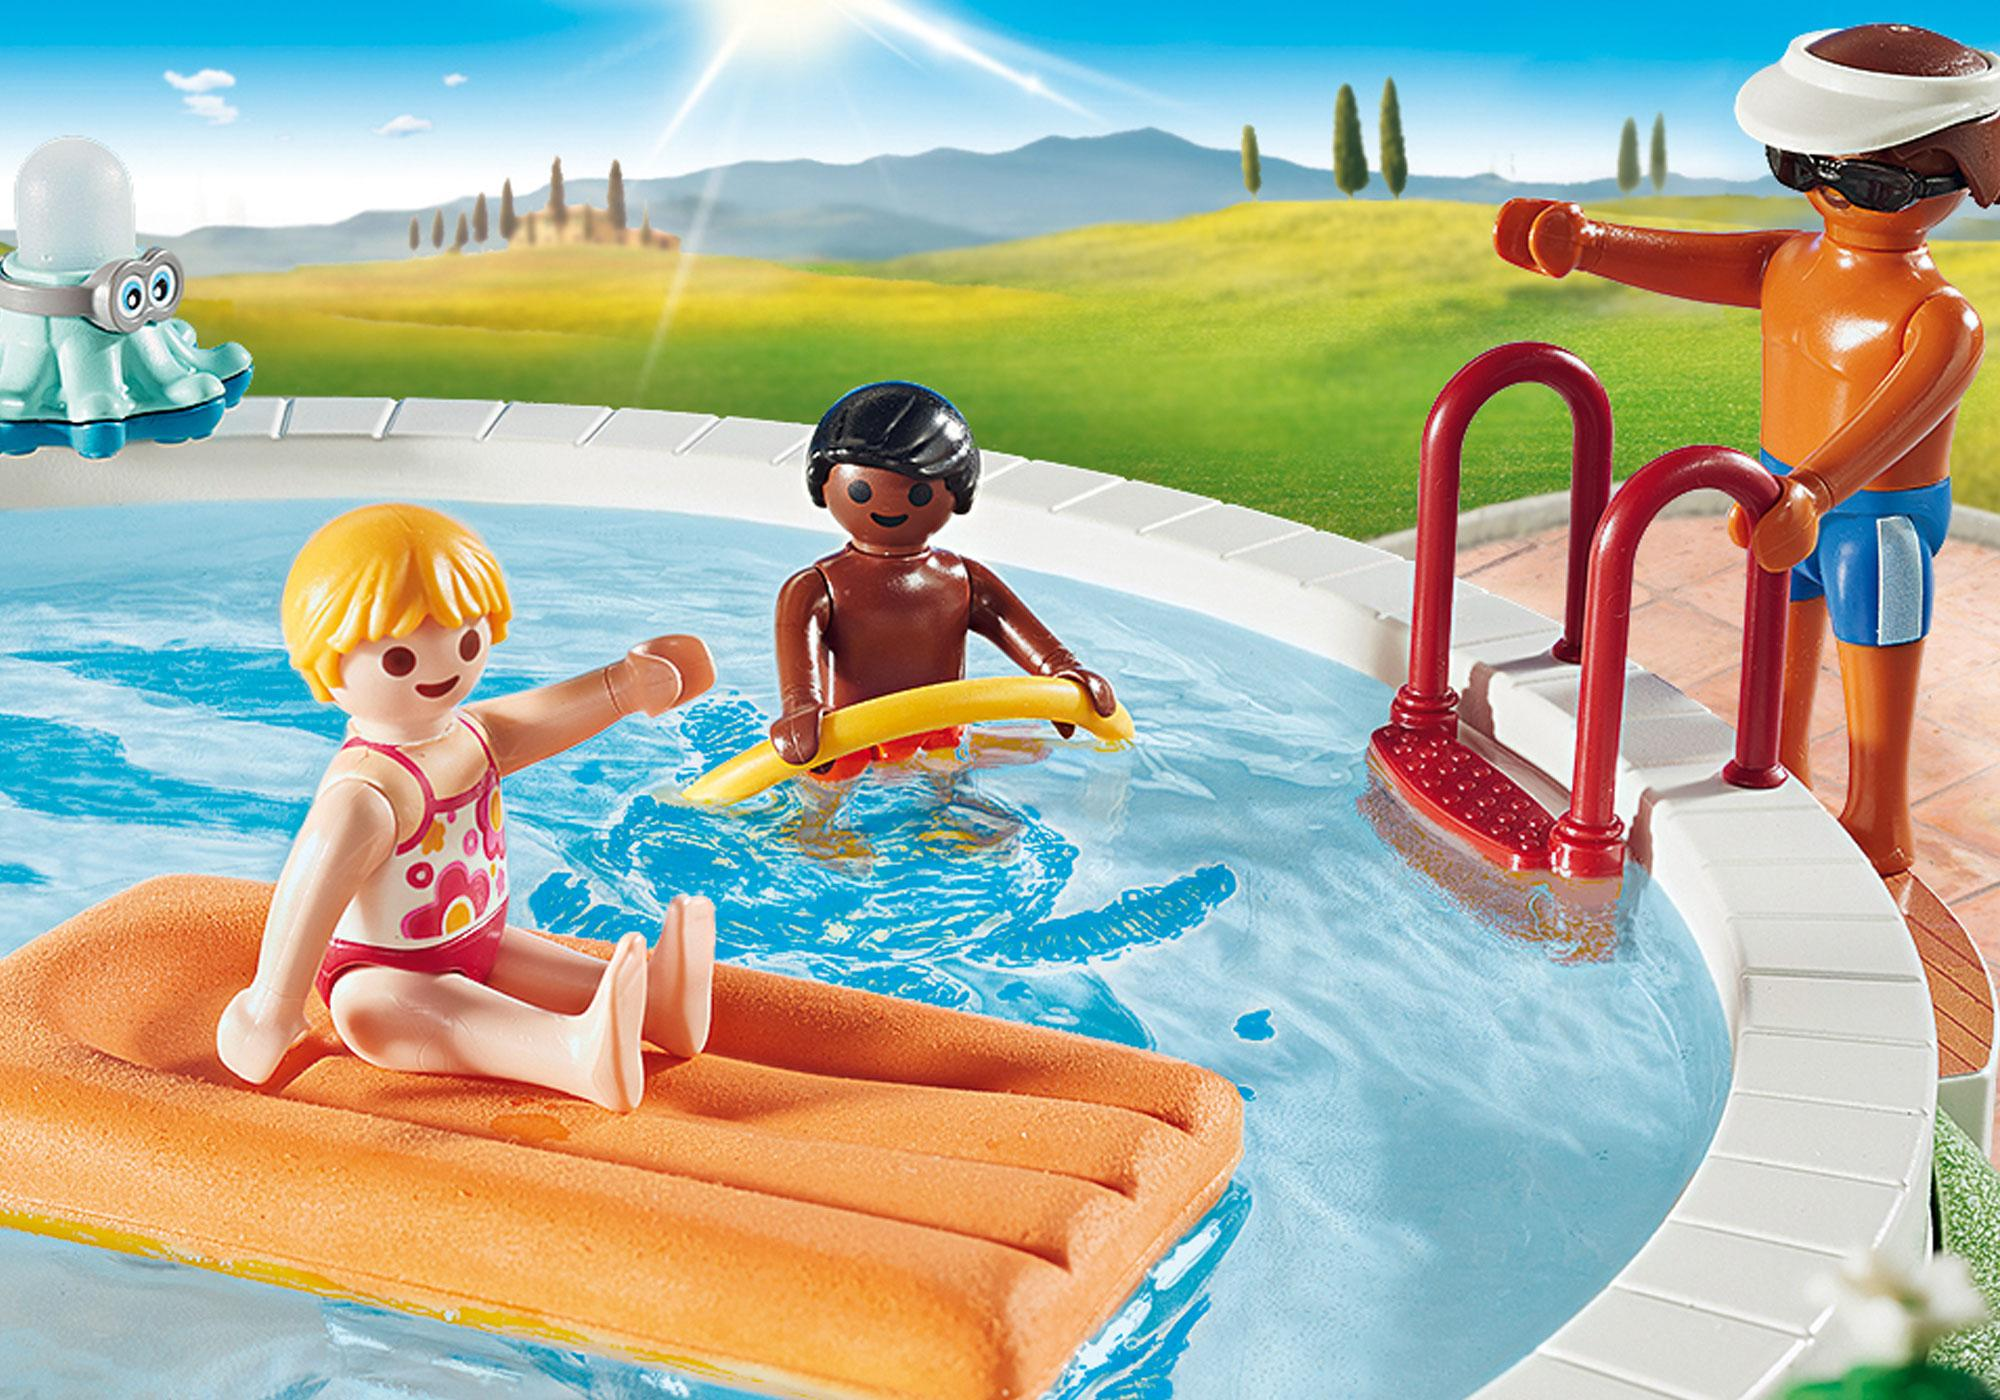 http://media.playmobil.com/i/playmobil/9422_product_extra3/Πισίνα με ντουζ